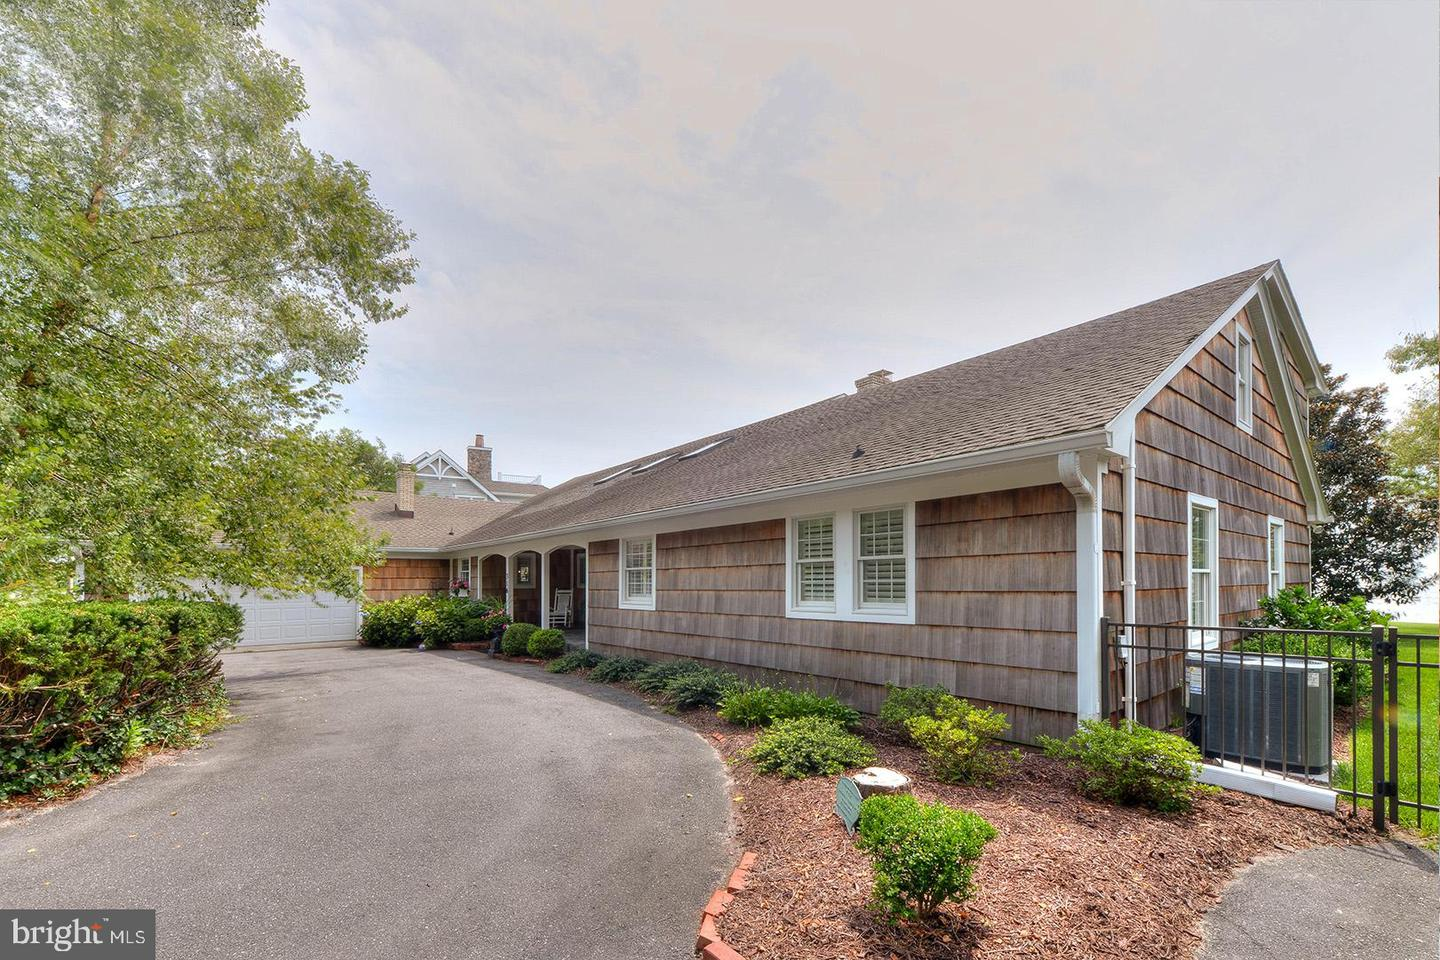 DESU146280-301986128490-2019-10-25-13-18-16 316 Salisbury St | Rehoboth Beach, DE Real Estate For Sale | MLS# Desu146280  - Rehoboth Beach Real Estate - Bryce Lingo and Shaun Tull REALTORS, Rehoboth Beach, Delaware